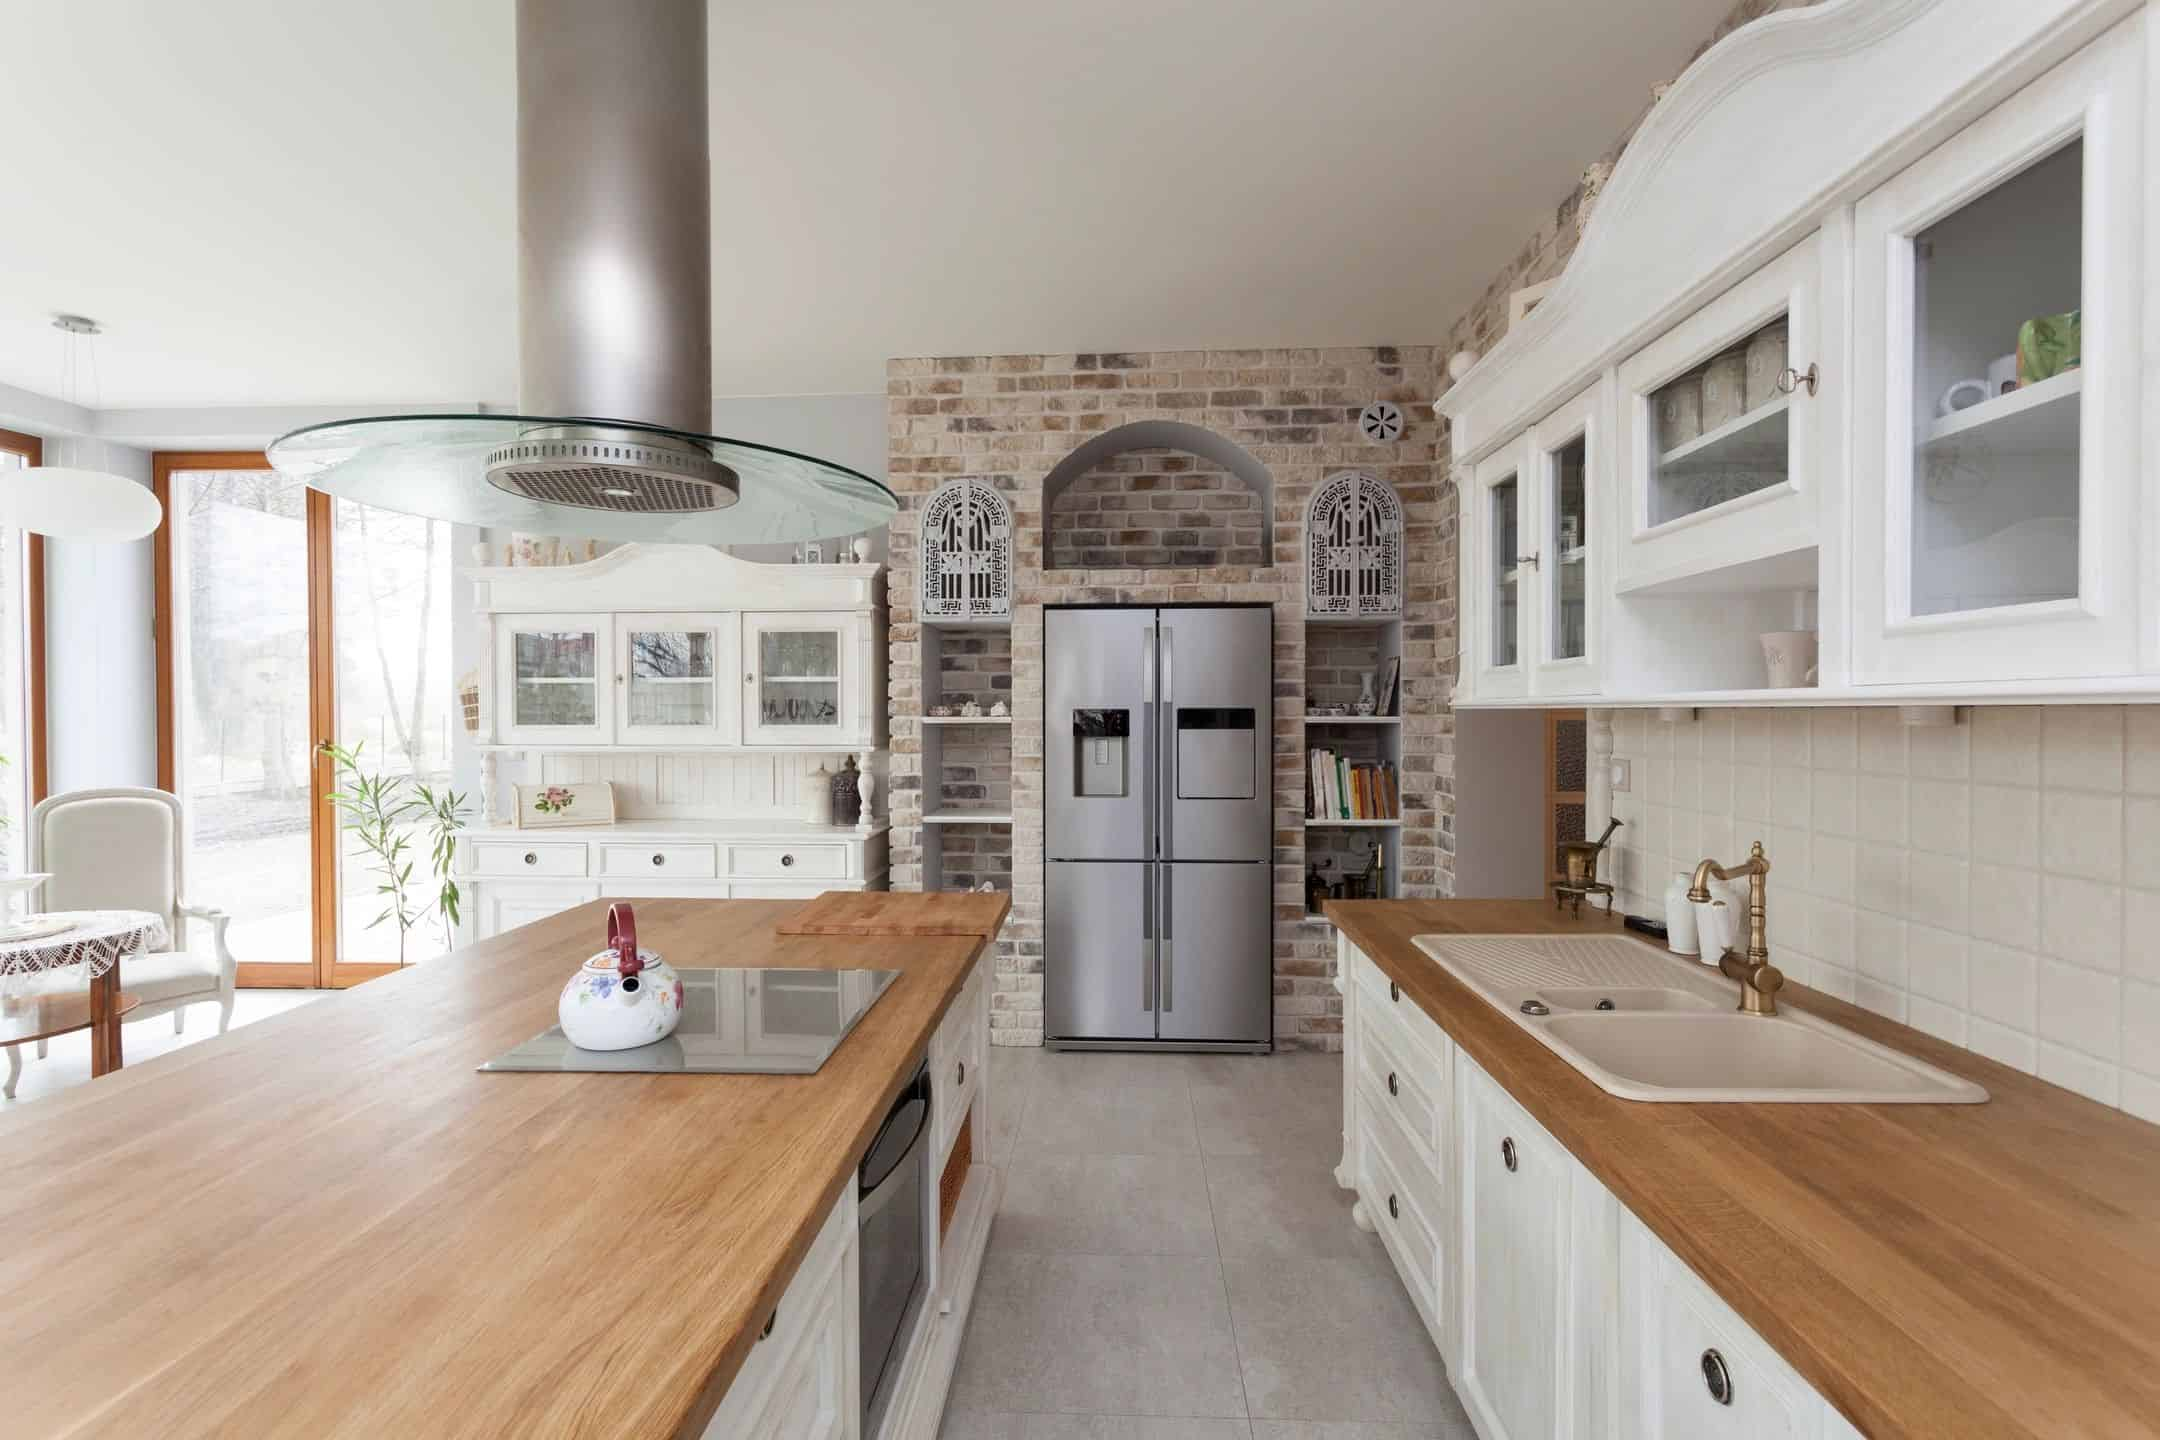 5 Upgrades To Increase The Value Of Your Home